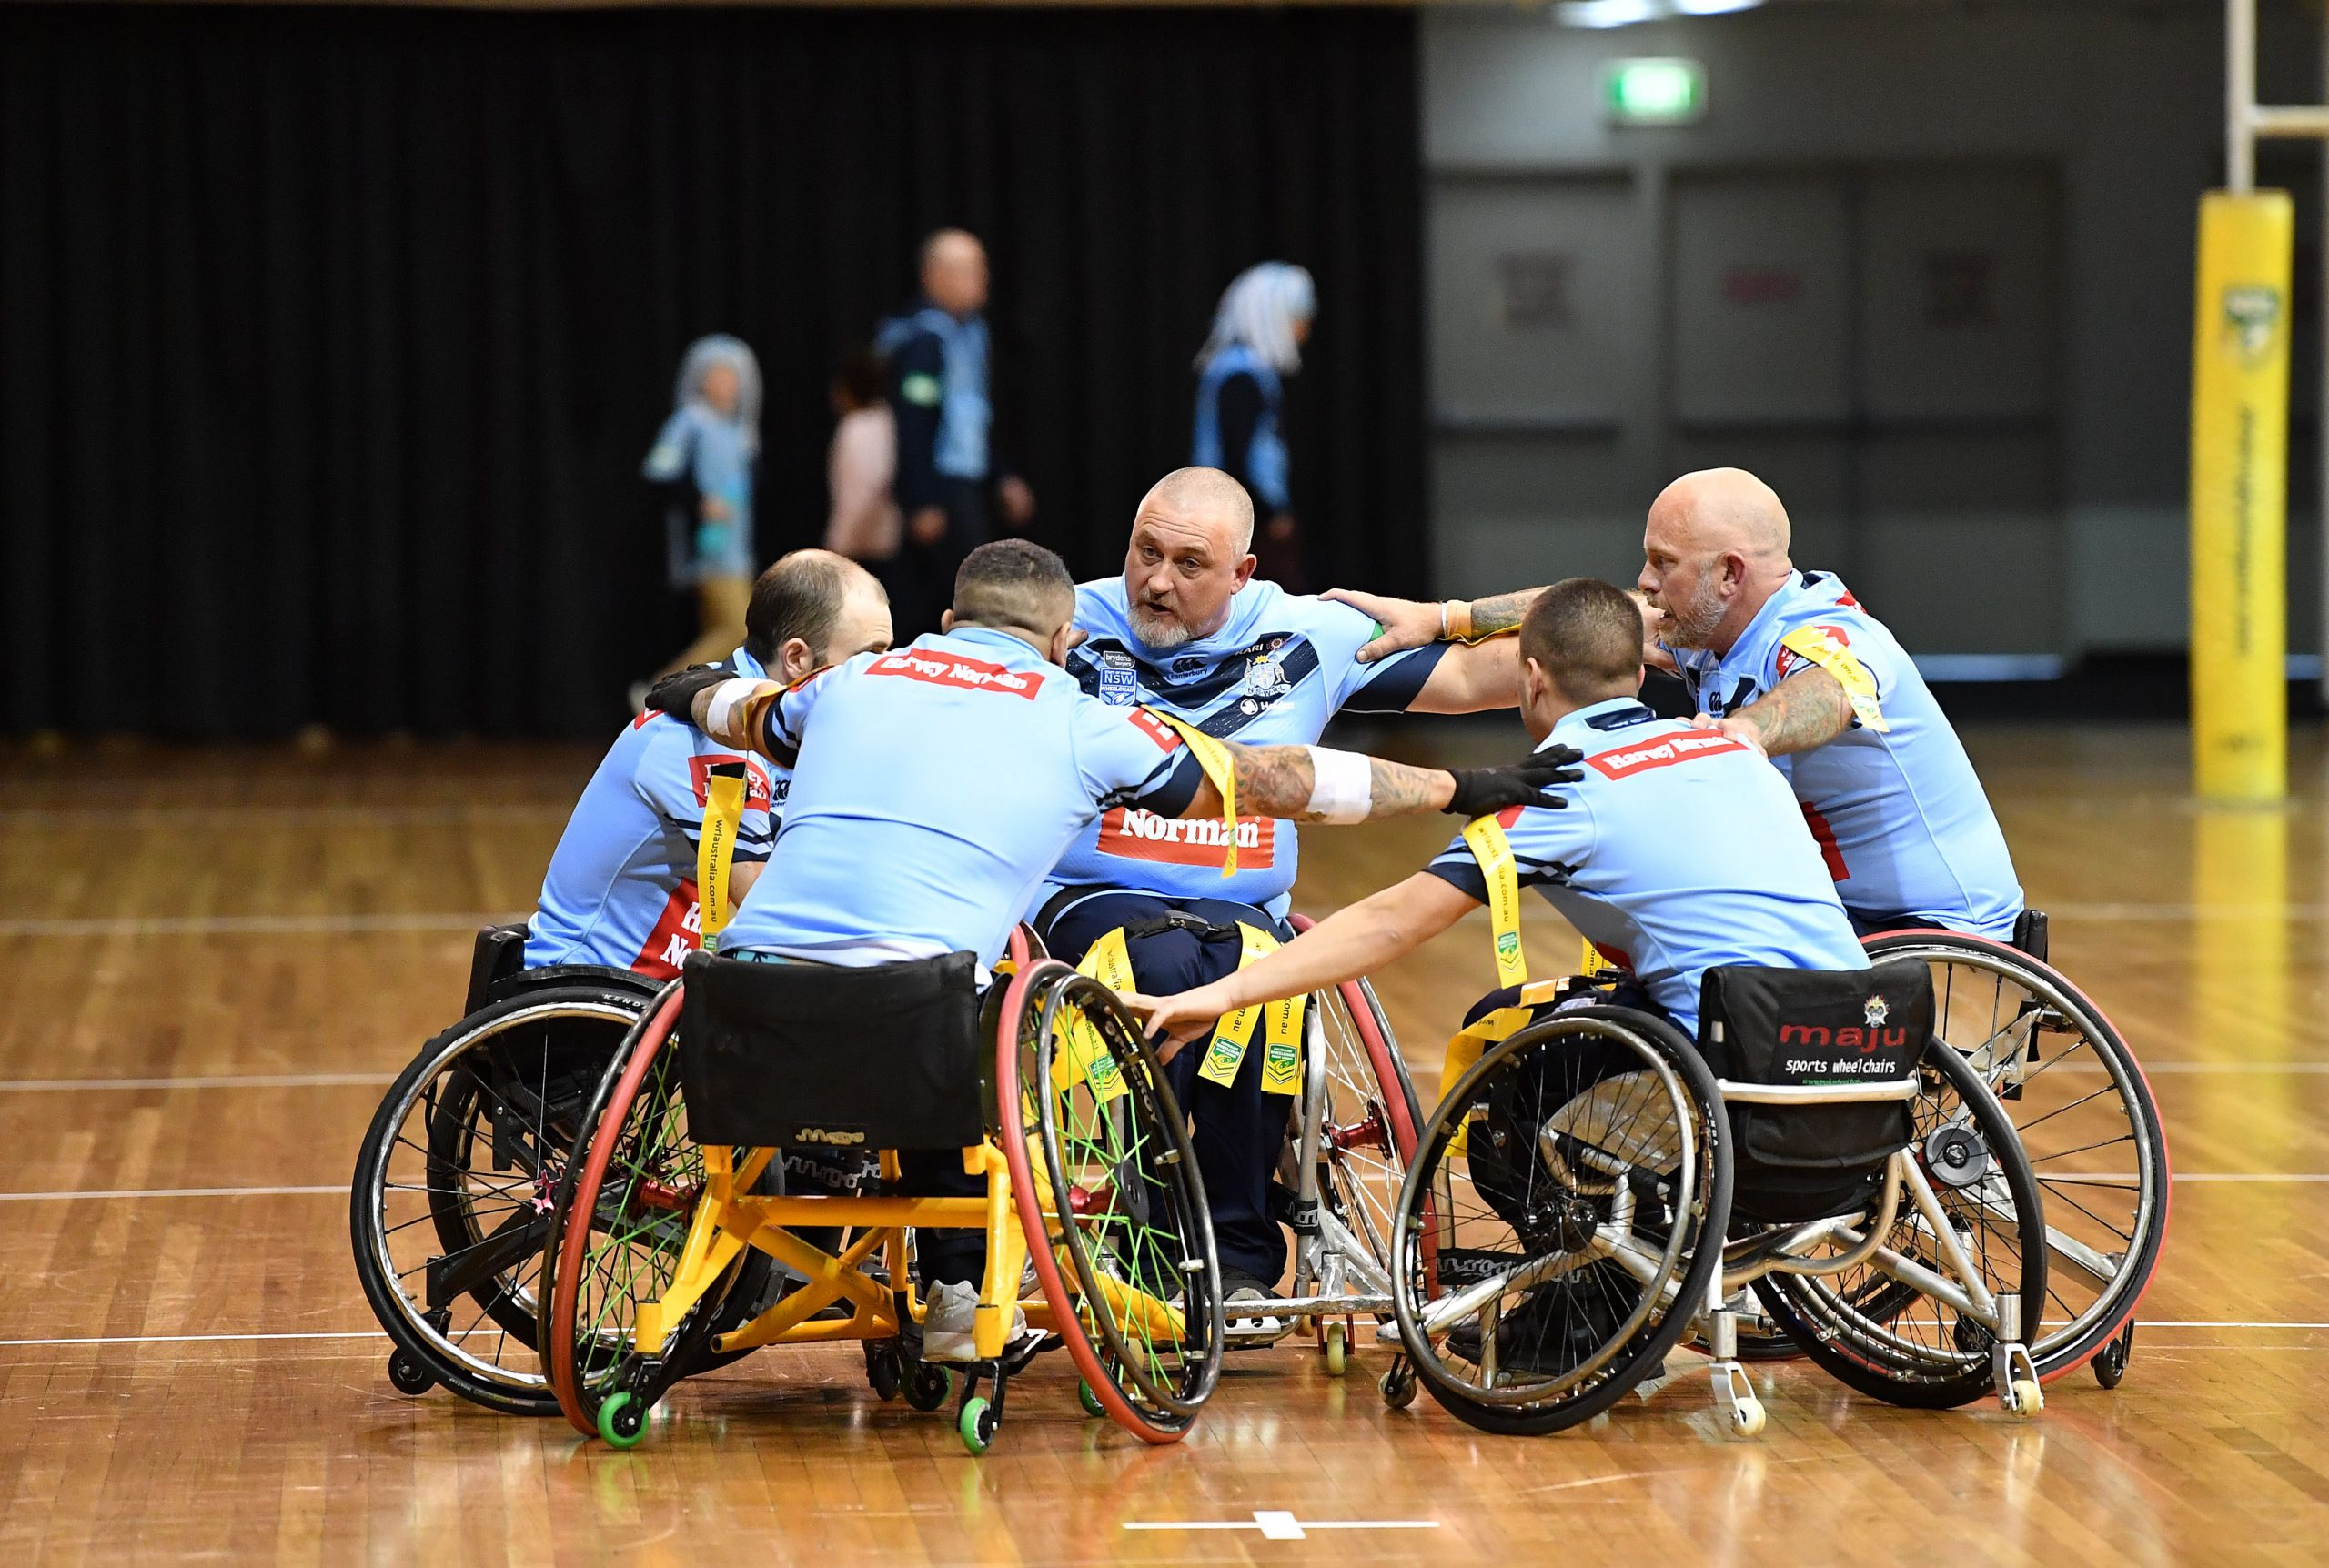 NSW Wheelchair competition kicks off this Saturday